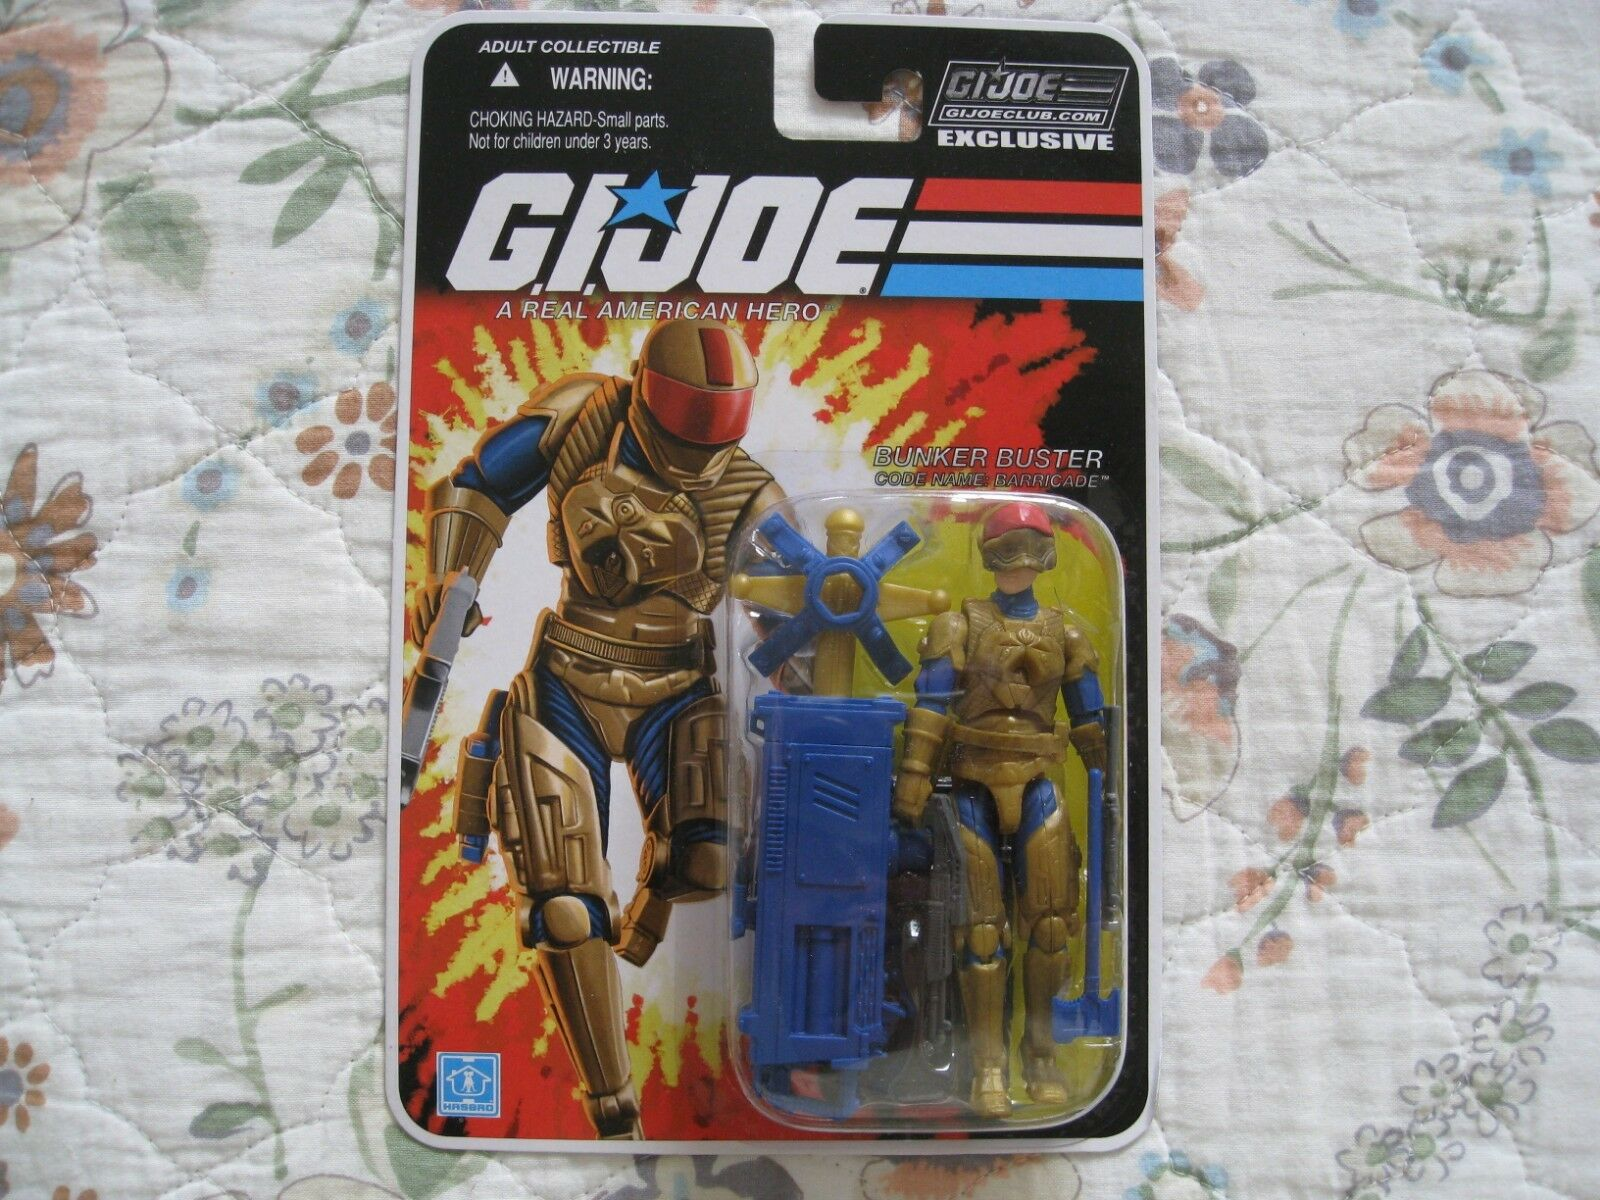 GI JOE COLLECTOR'S CLUB EXCLUSIVE BUNKER BUSTER - BARRICADE